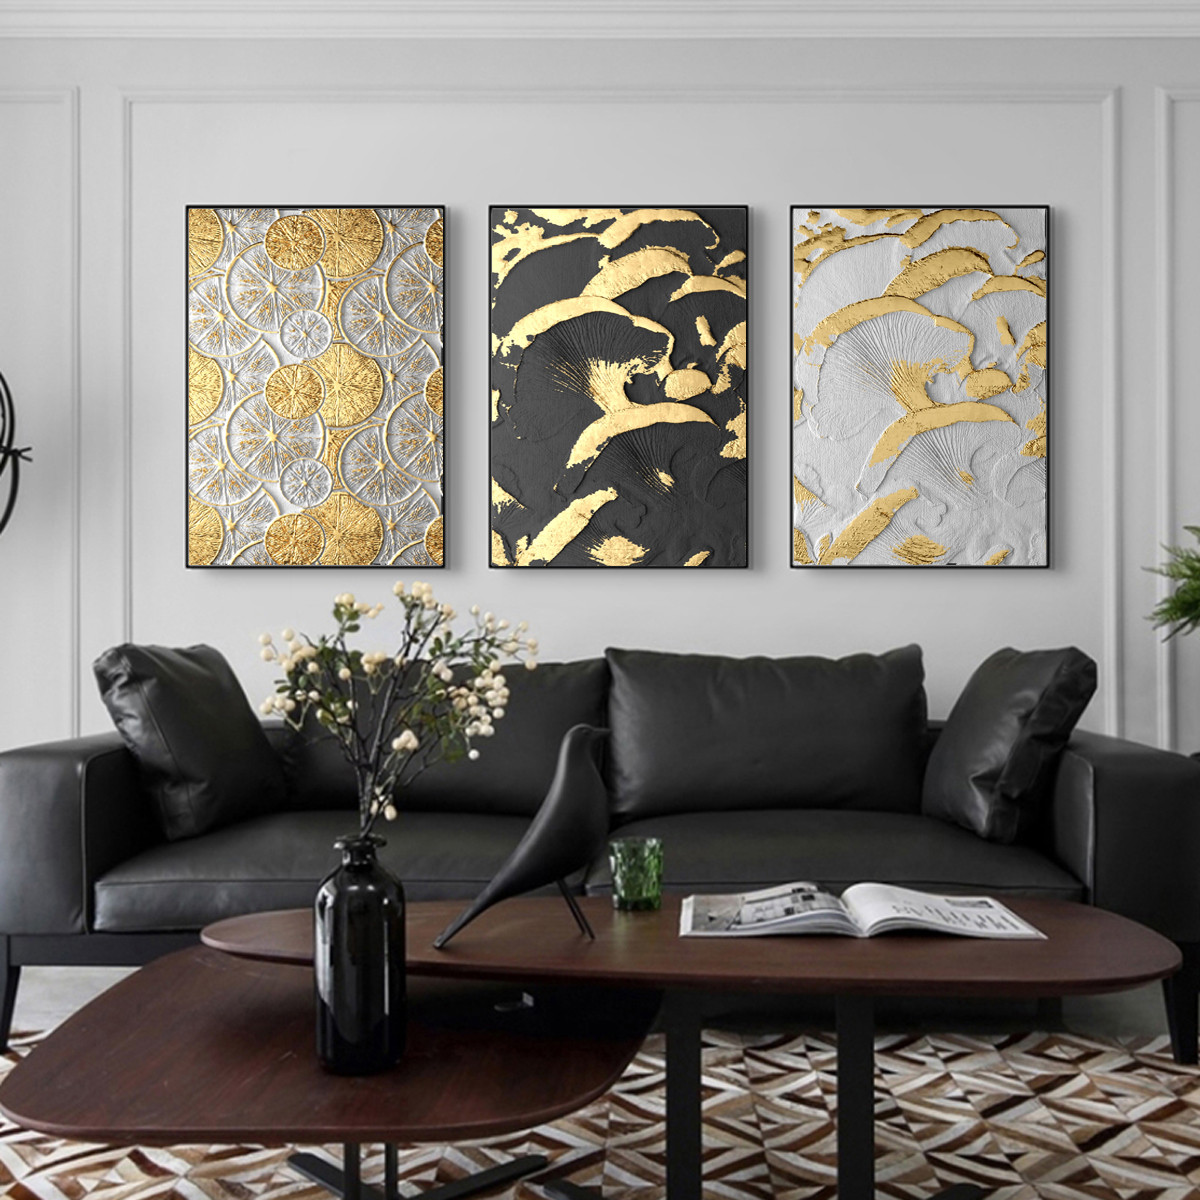 Luxury Gold Black Relief Canvas Home Living Room Decor Art Wall Hangings Poster Ebay